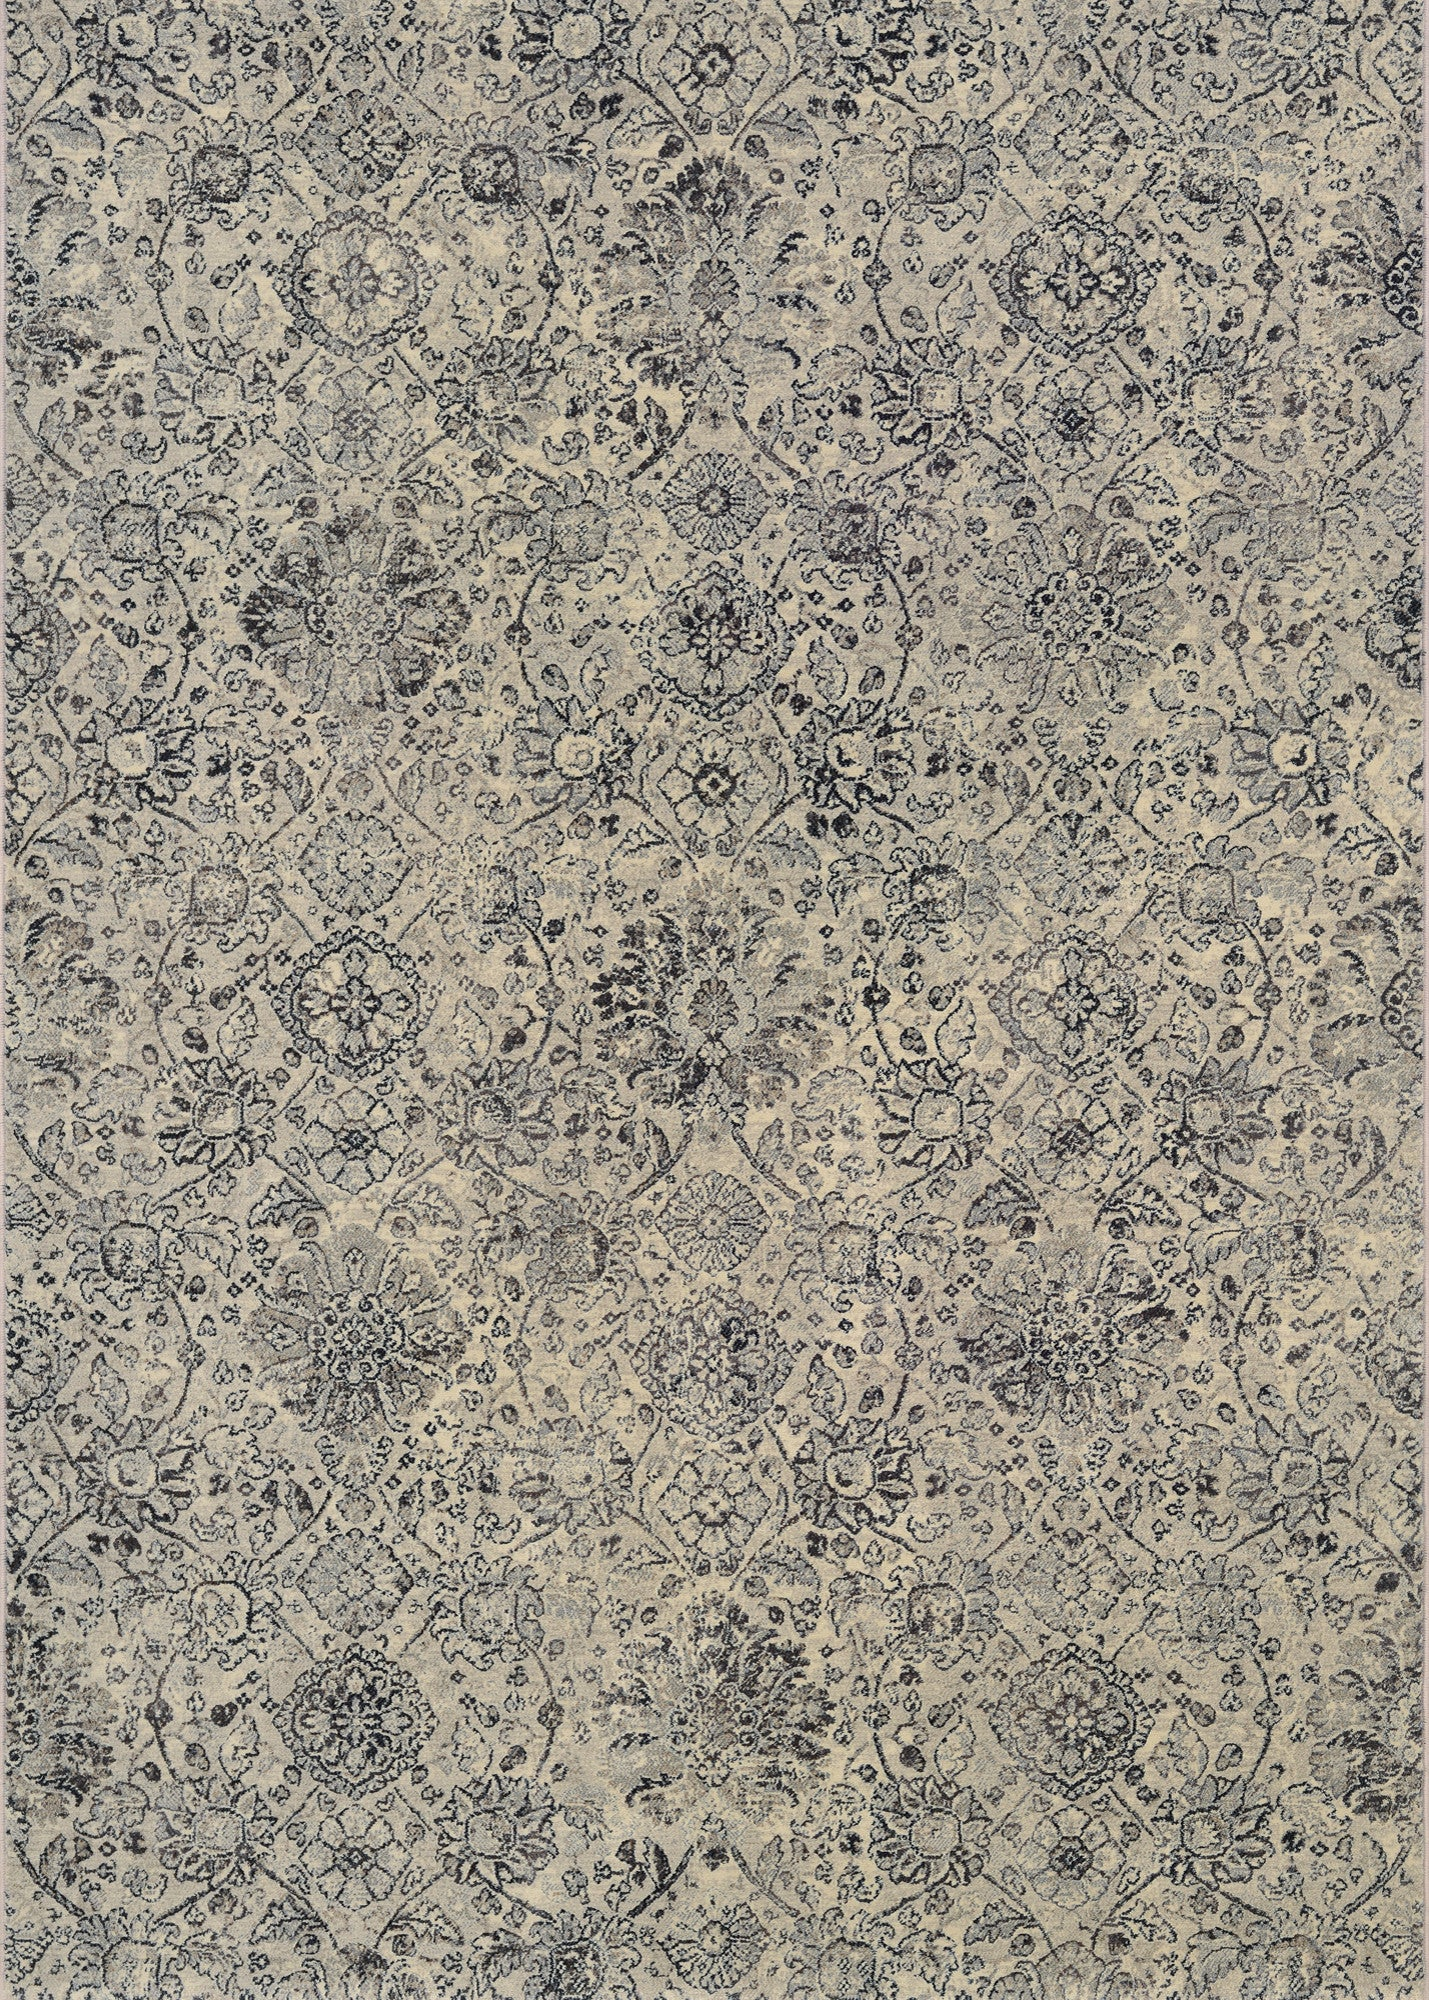 Couristan Easton Winslet Beige/Black Area Rug